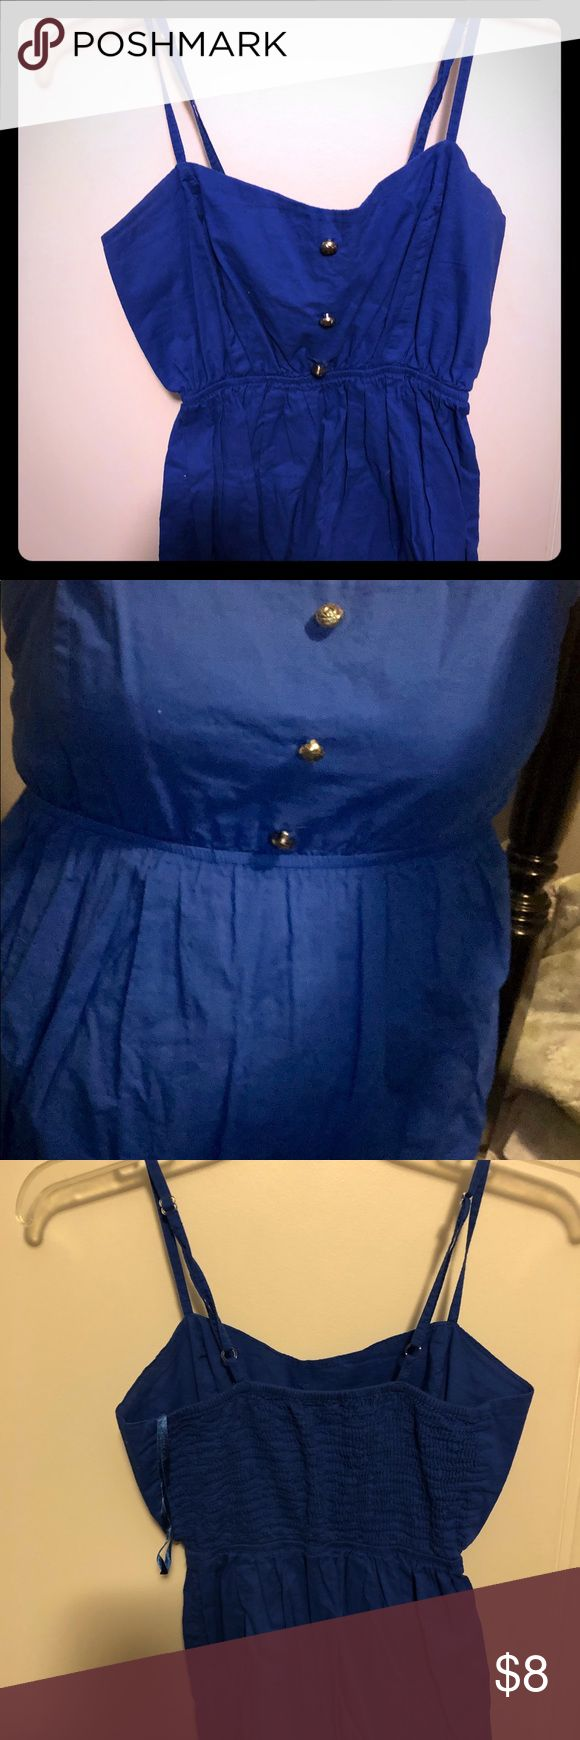 Primark Blue Top Blue top. UK size 12, US size 8. Has buttons on front and cinched in back. Great casual top for summer! Atmosphere Tops Tank Tops